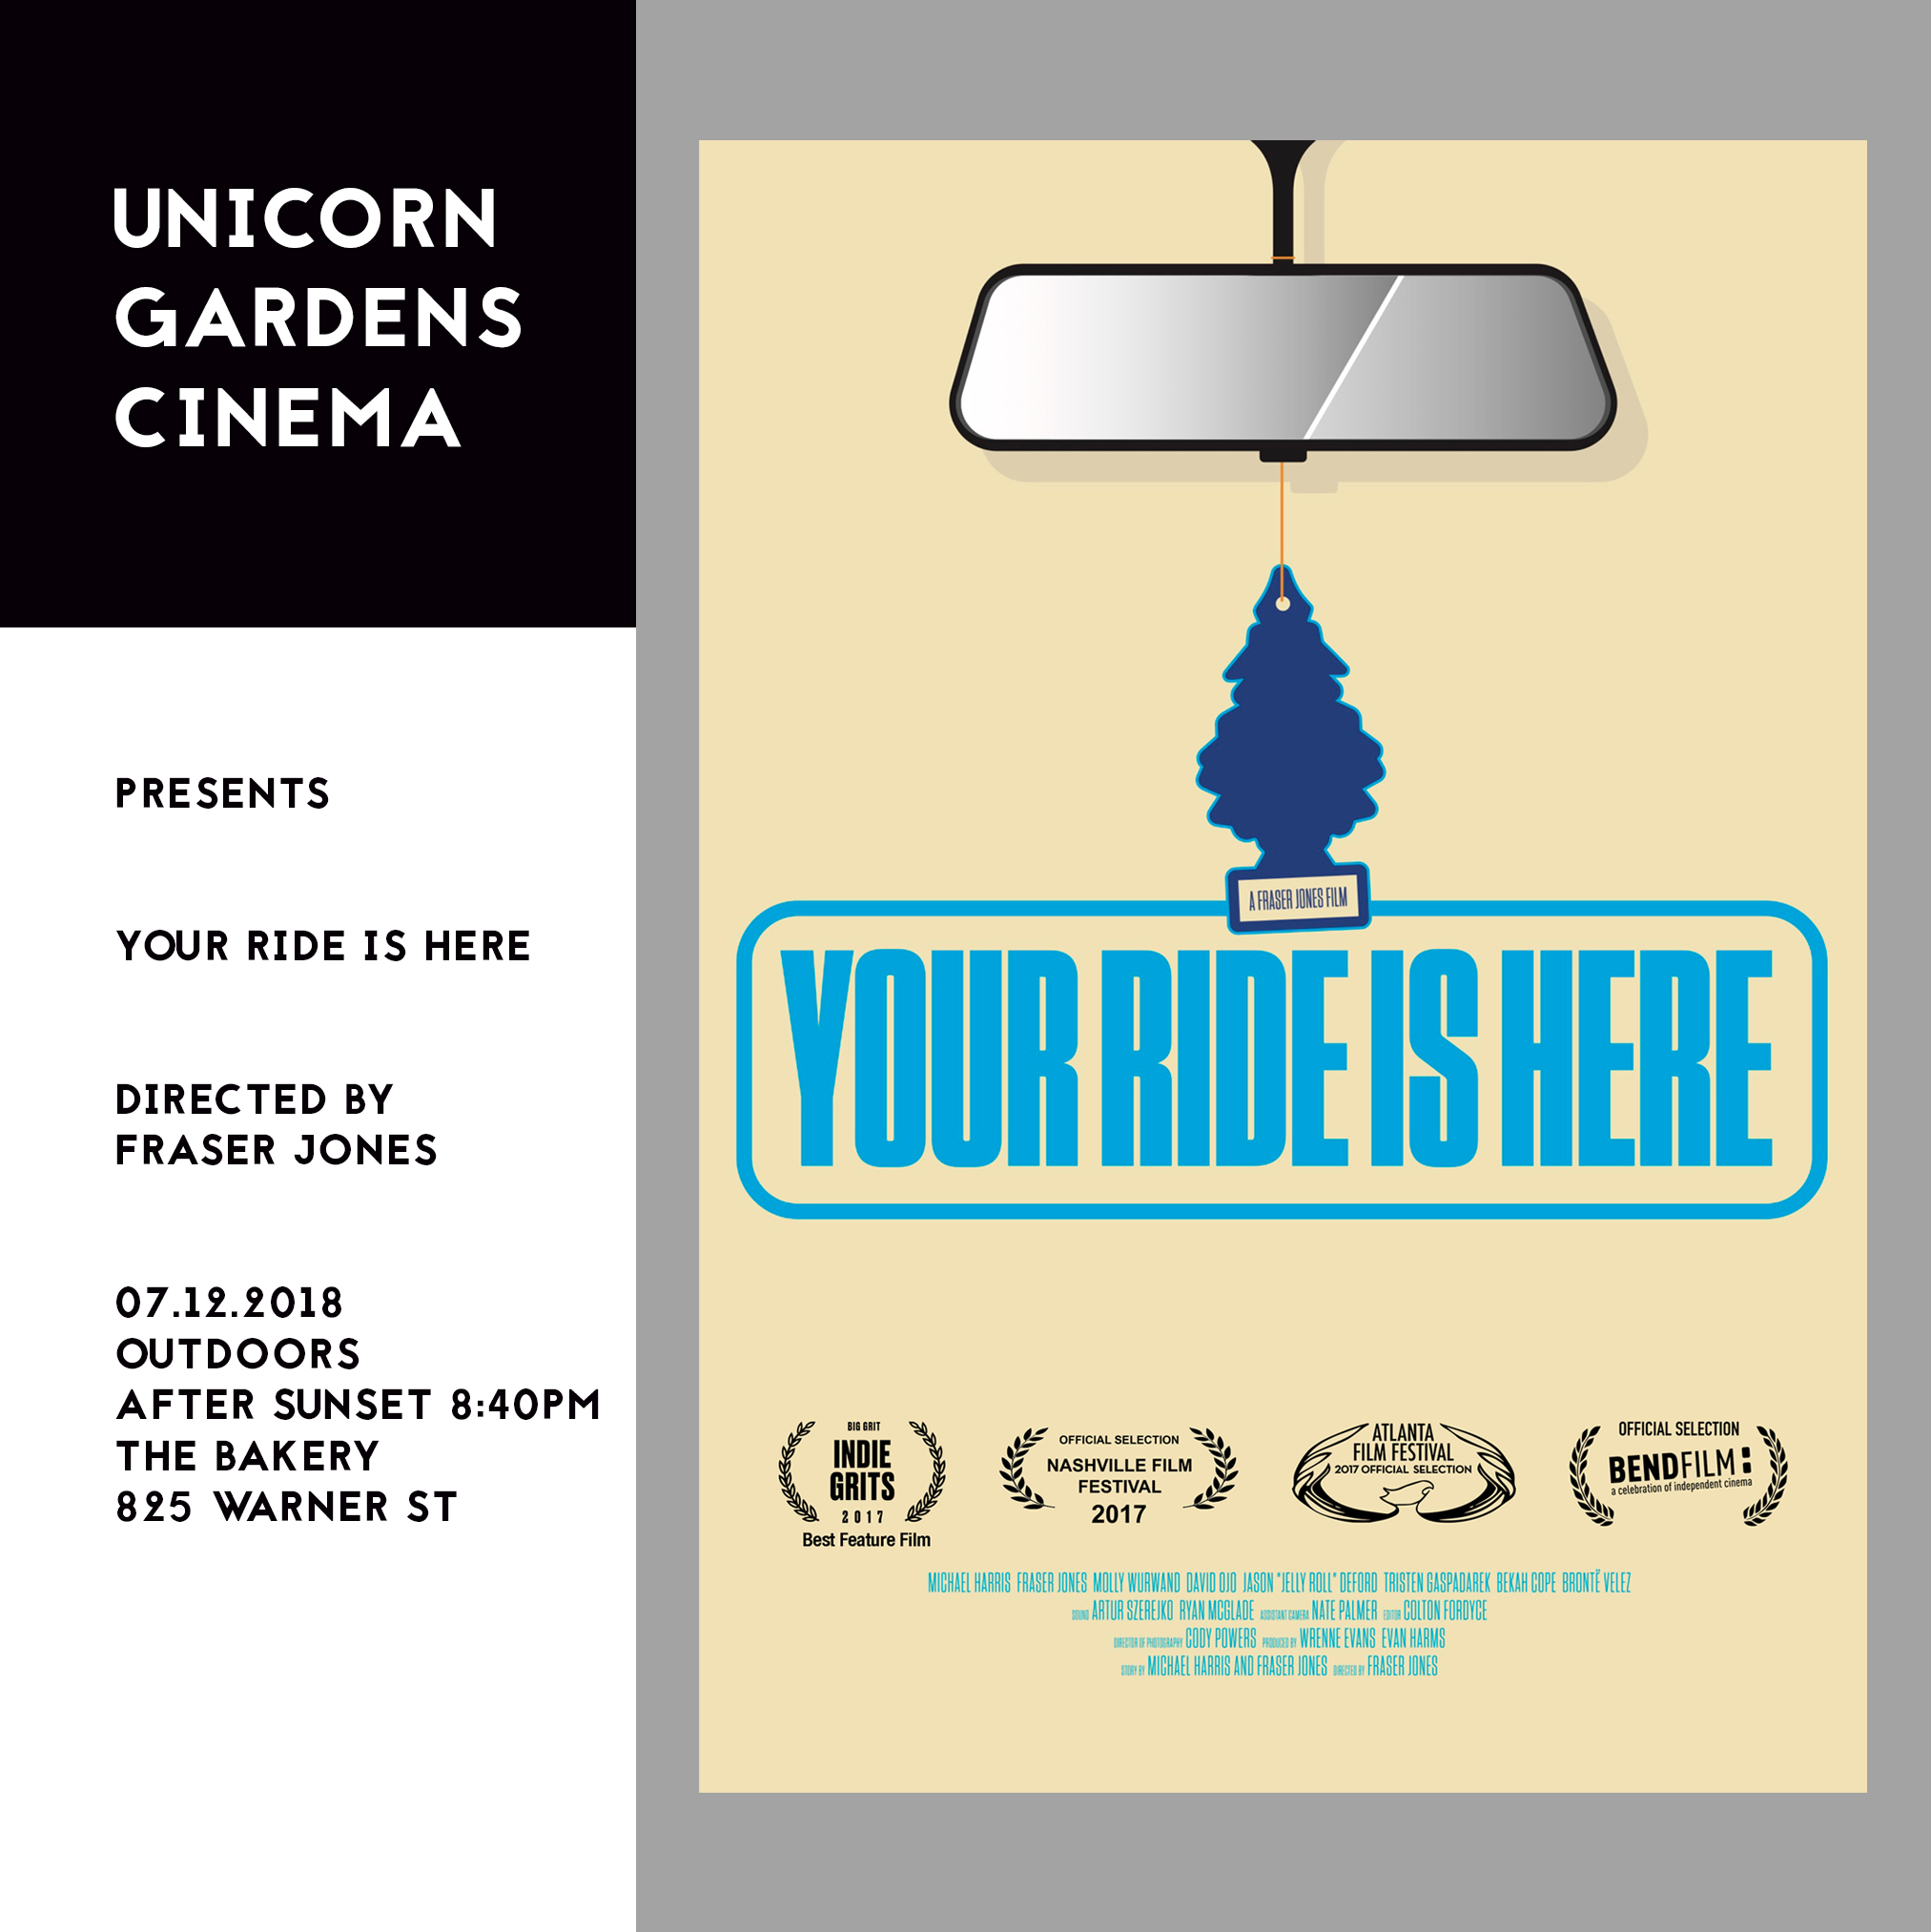 Your Ride is Here - July 12, 2018